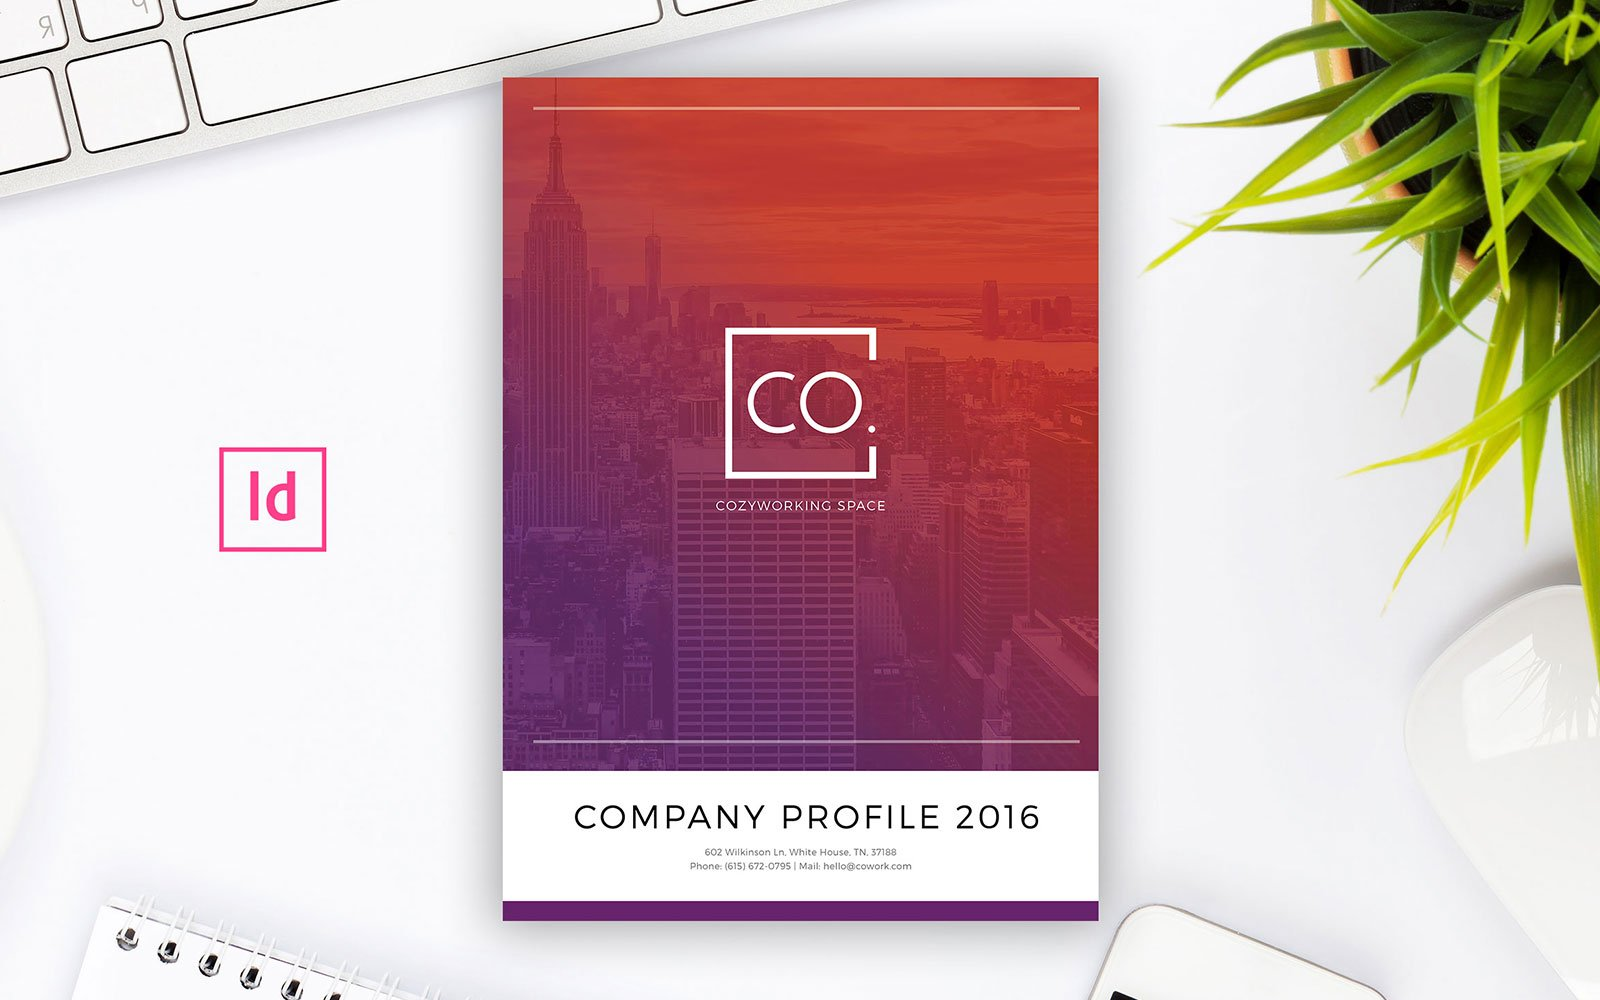 Company Profile Indesign Magazine Template